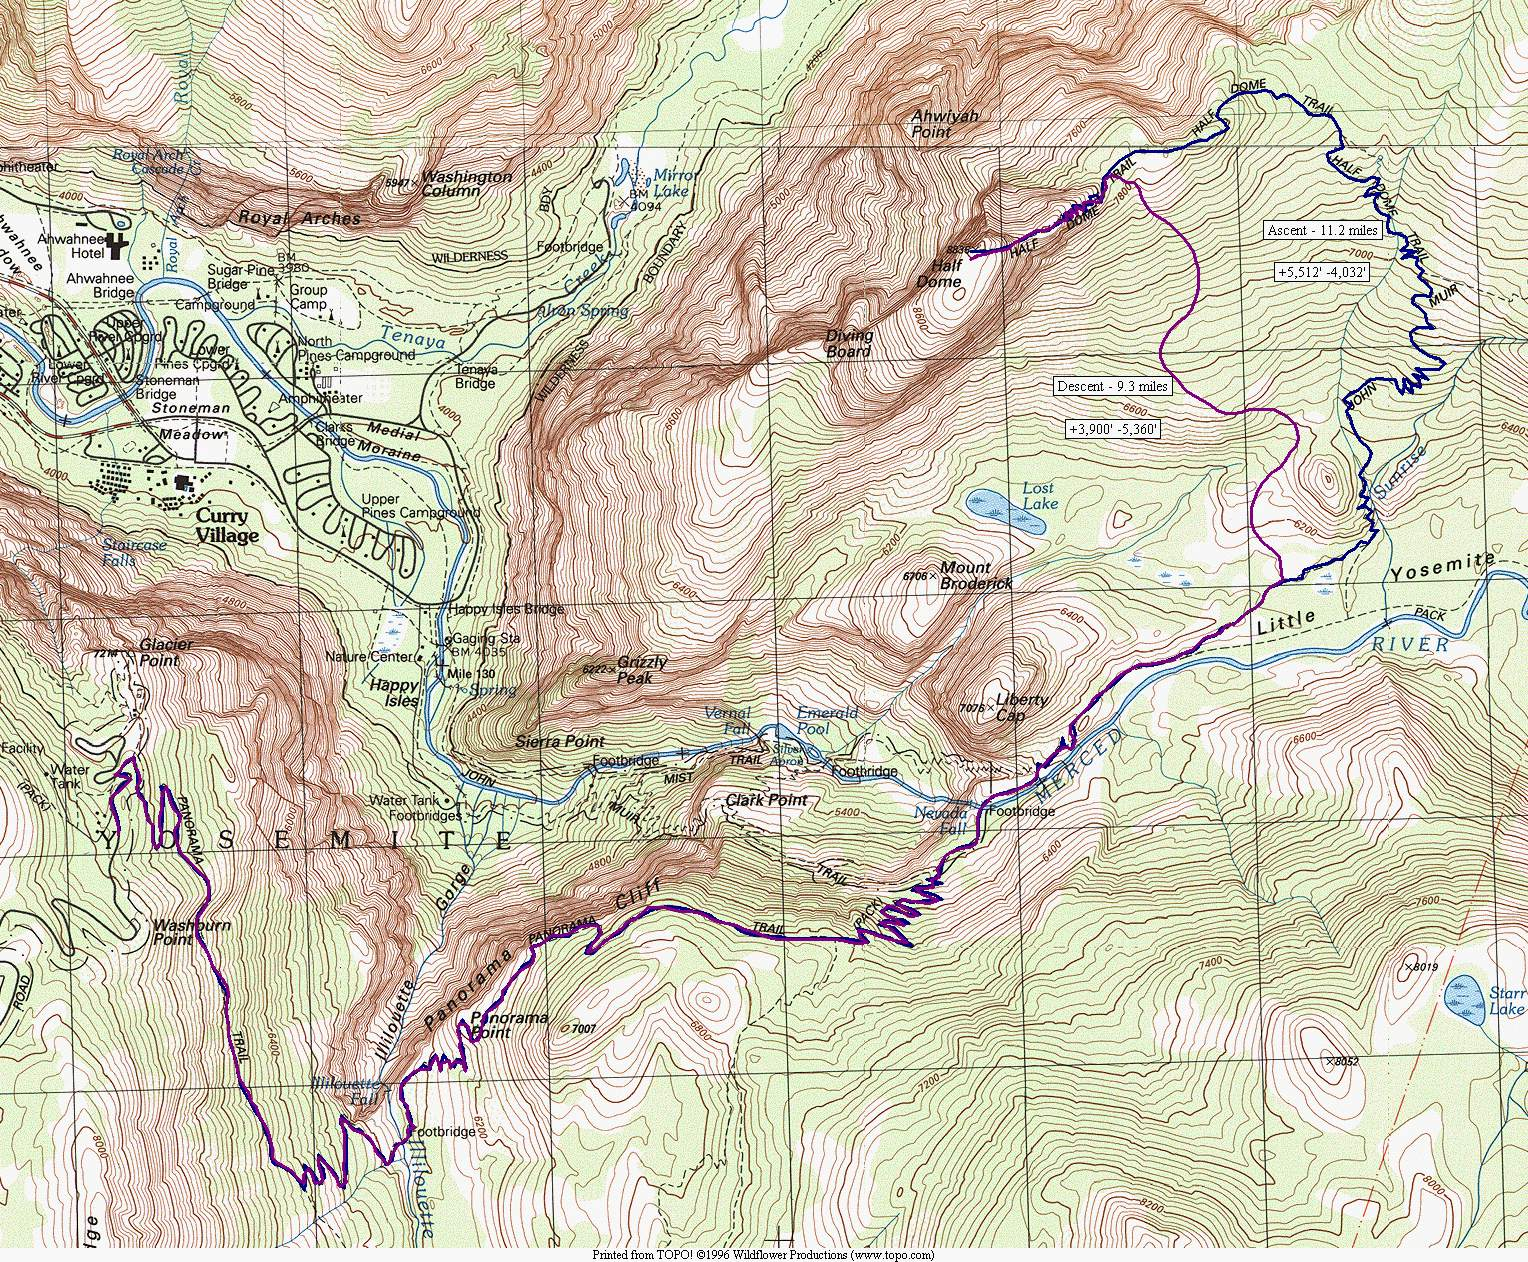 Tiocampo s 1980 Half Dome Trip Map This map shows a hike I made in 1980  from Glacier Point to the top of Half  Dome  and back  My companion was Mr  Doug Spinks  We did the trip in one